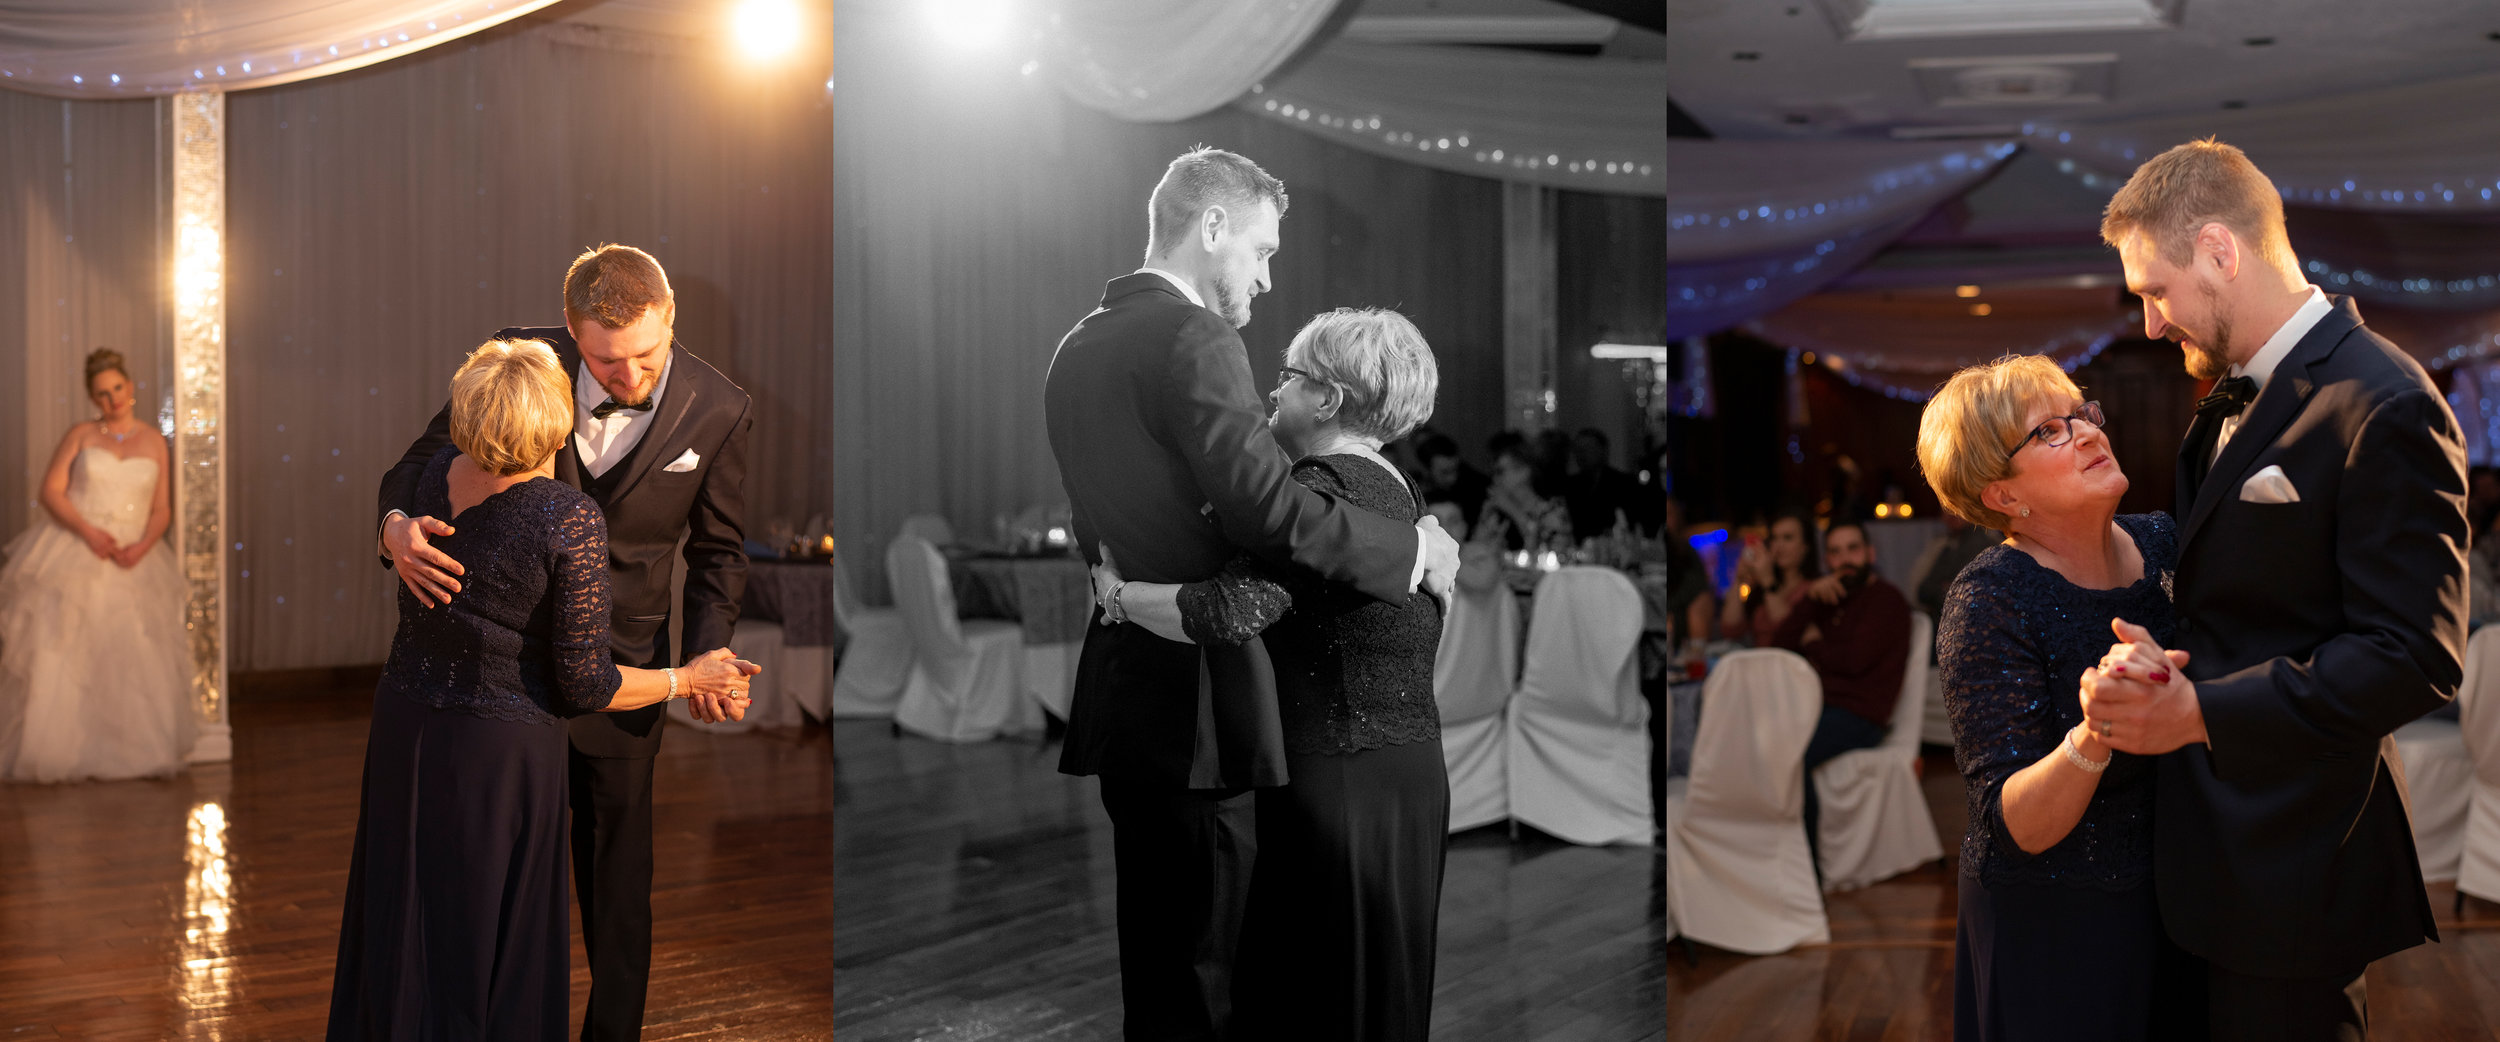 Mother-Son Dance.jpg